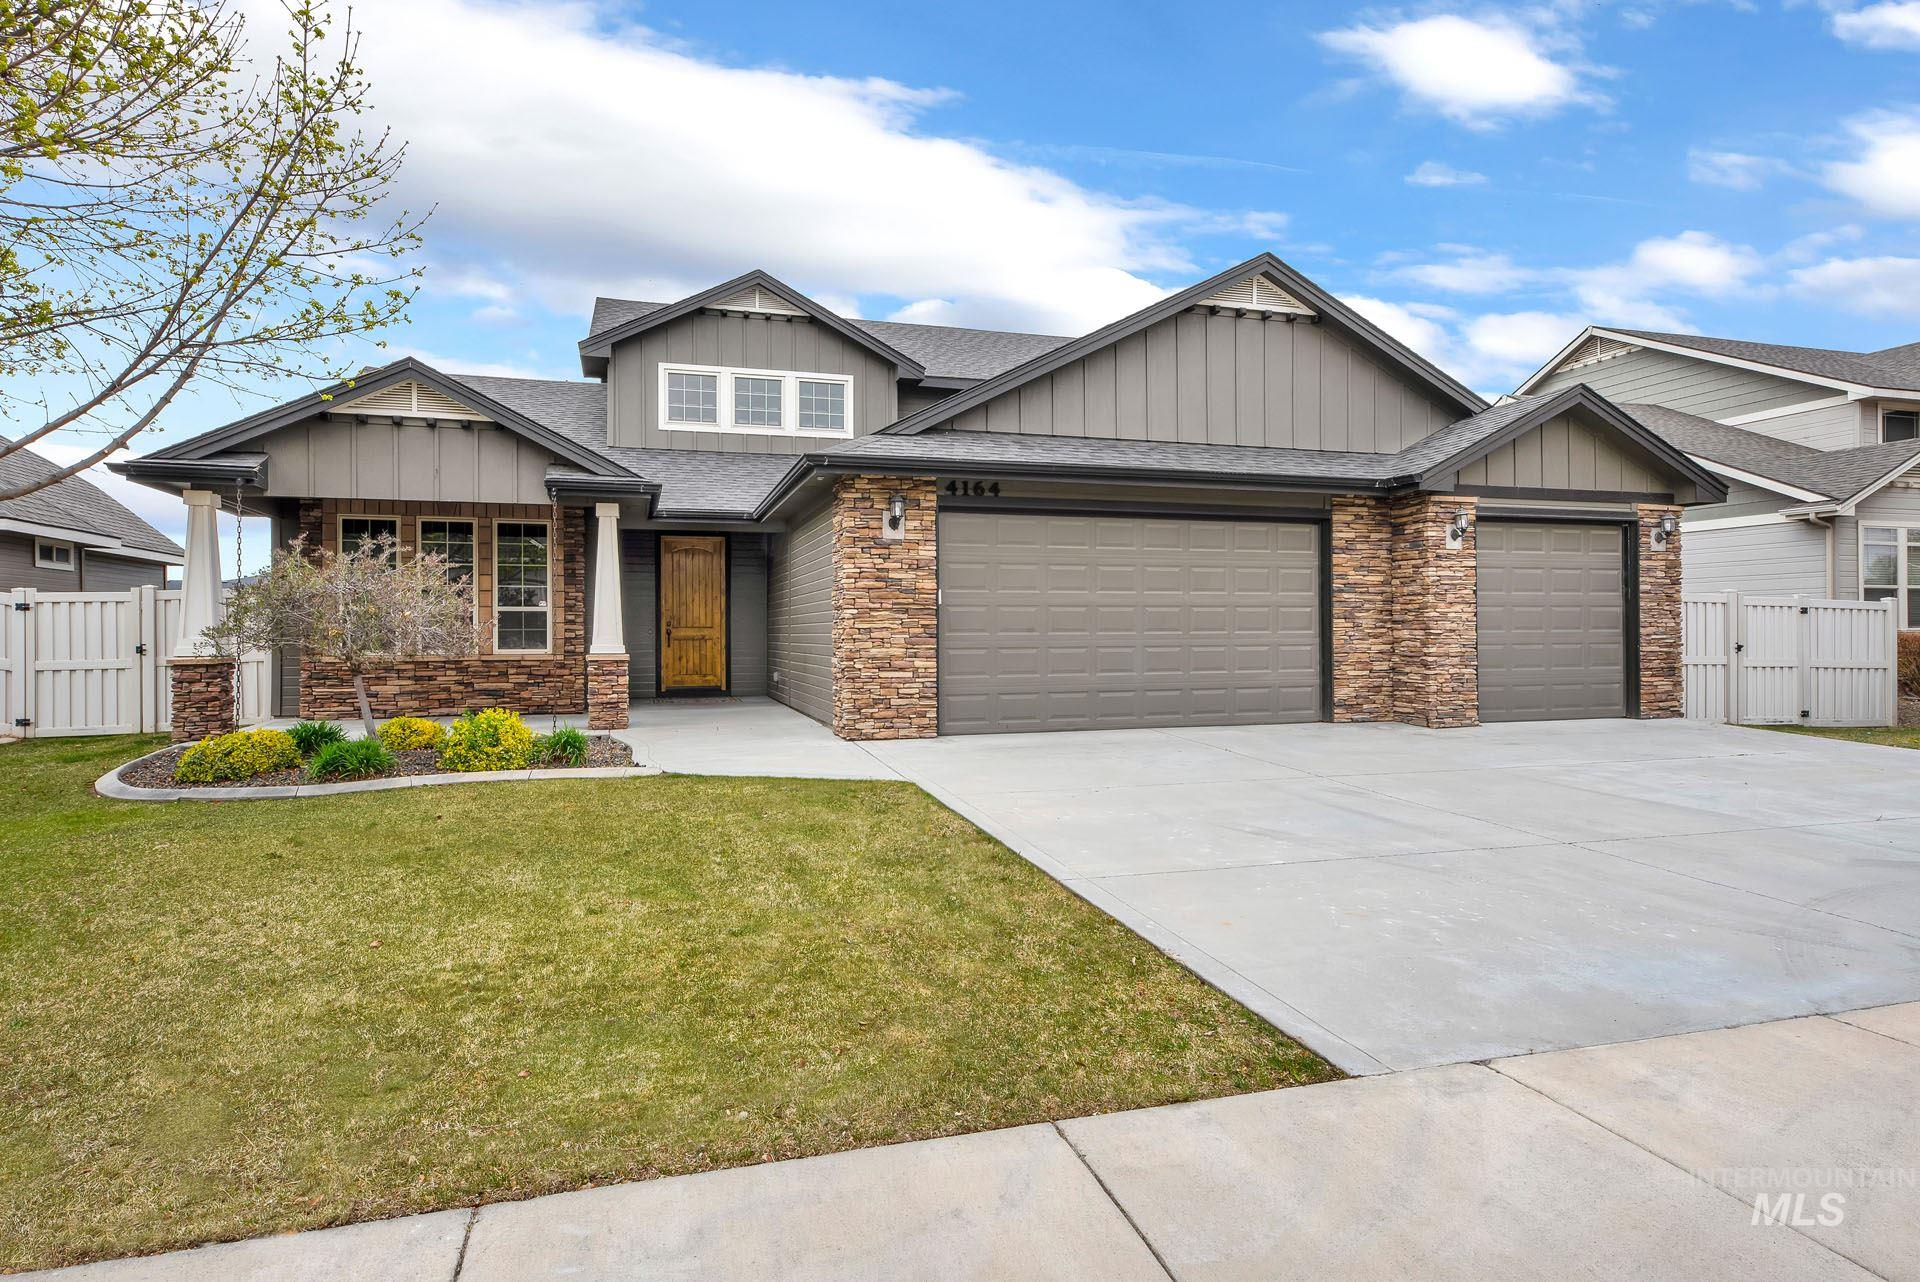 4164 Pine Bluff Property Photo - Meridian, ID real estate listing